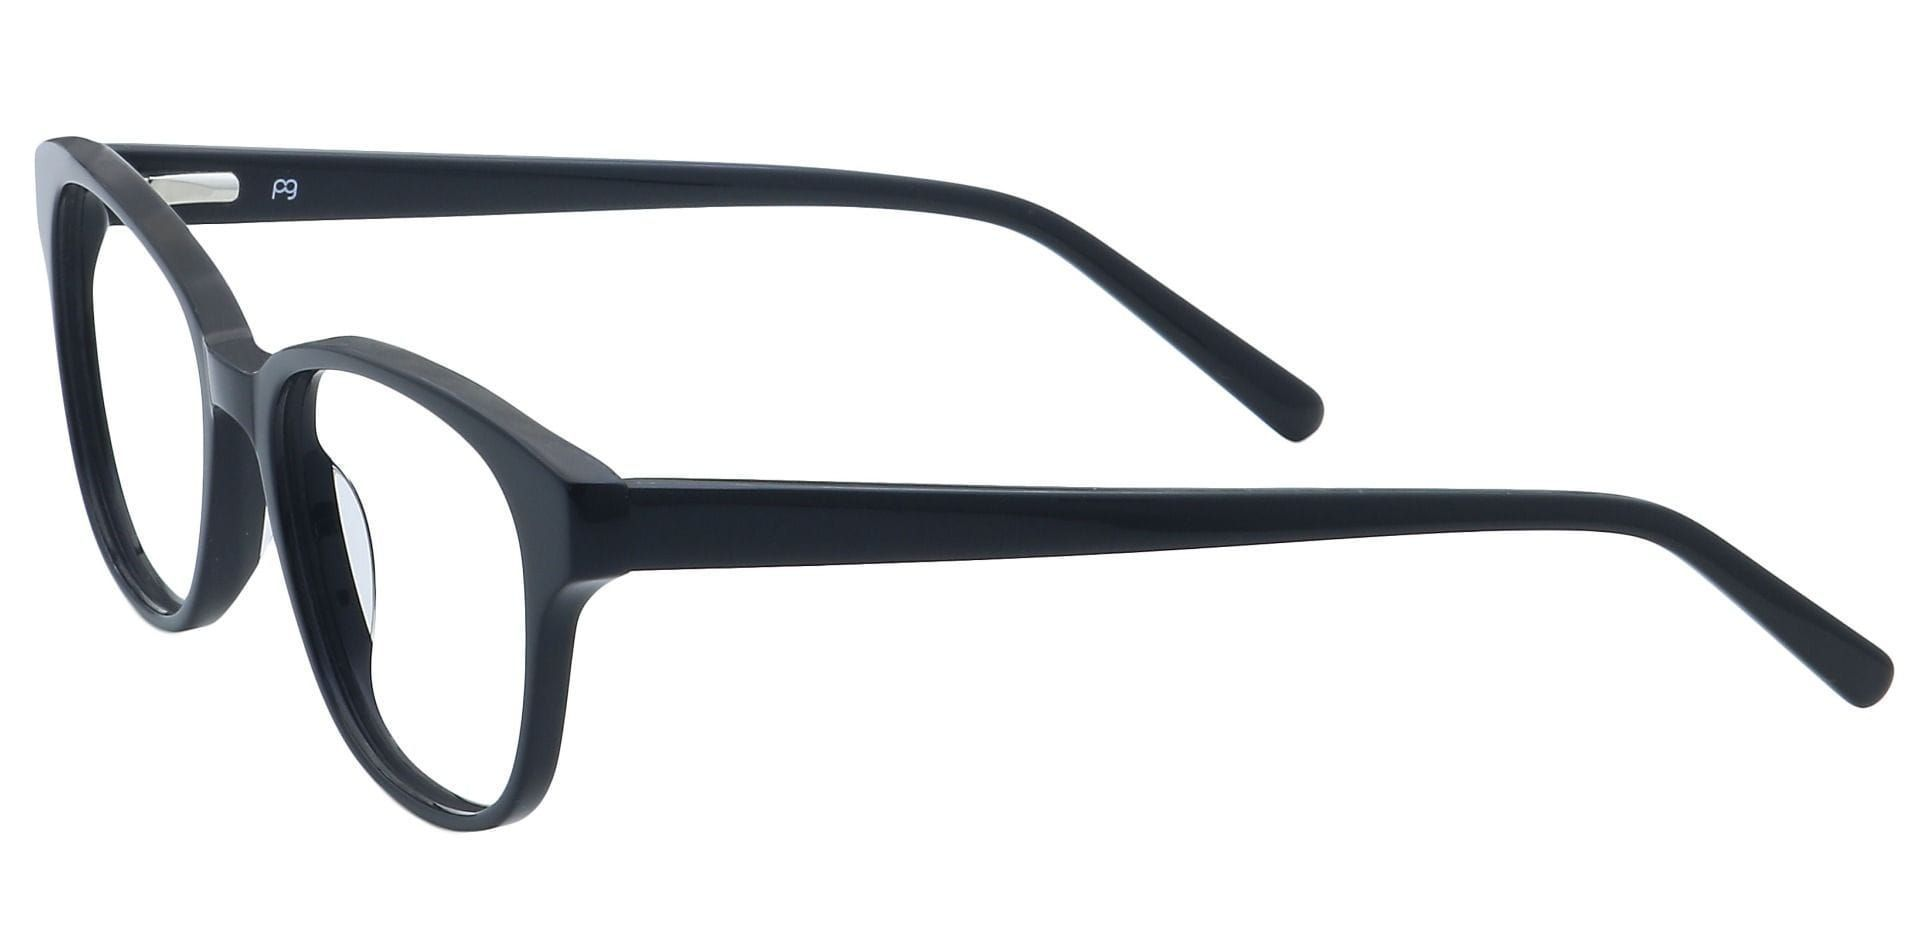 Elan Classic Square Progressive Glasses - Black